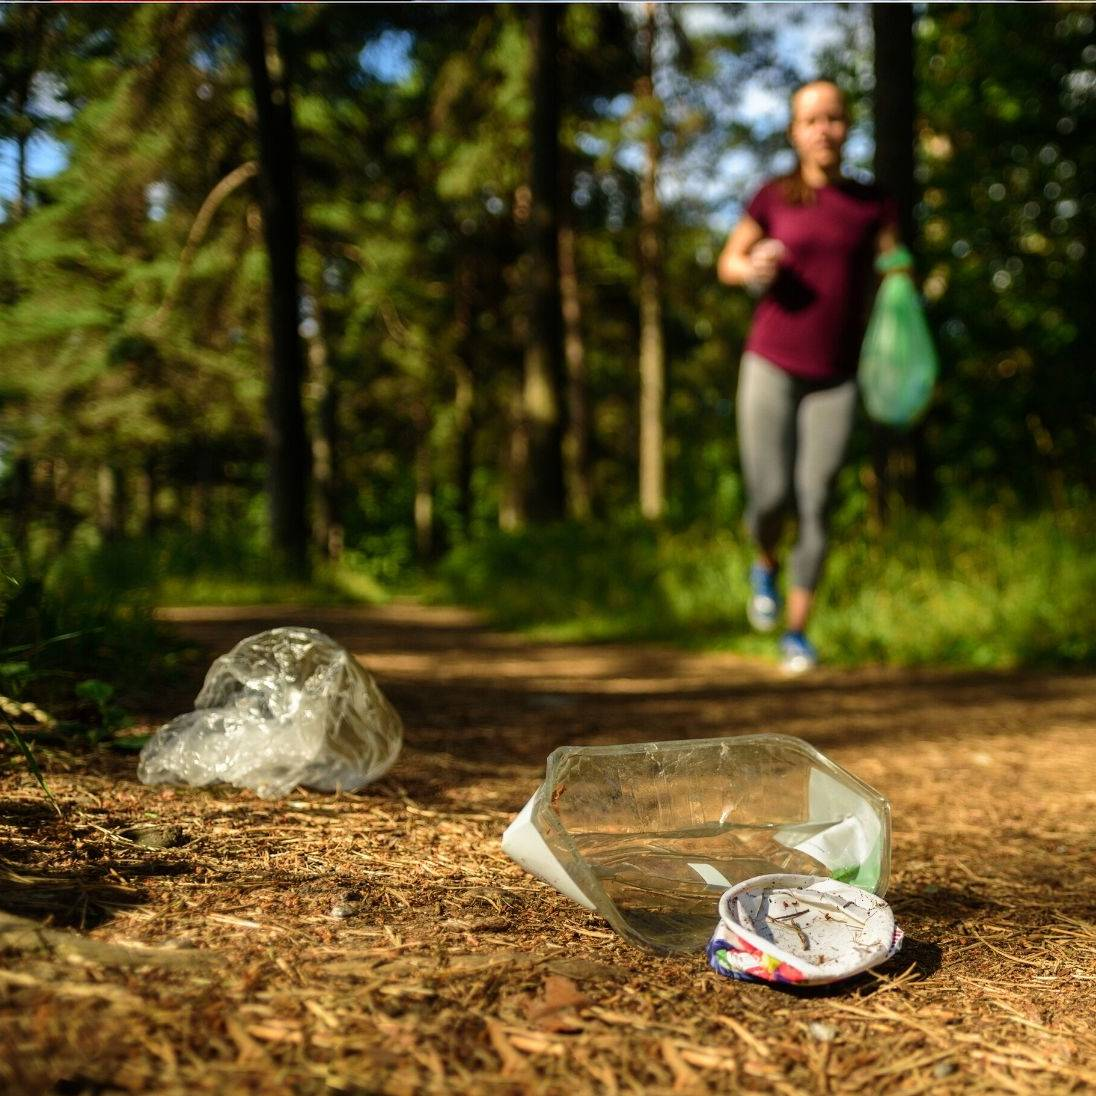 «PLOGGING DAY» in Ravenna Wednesday 8 July with meeting in Baronio Park